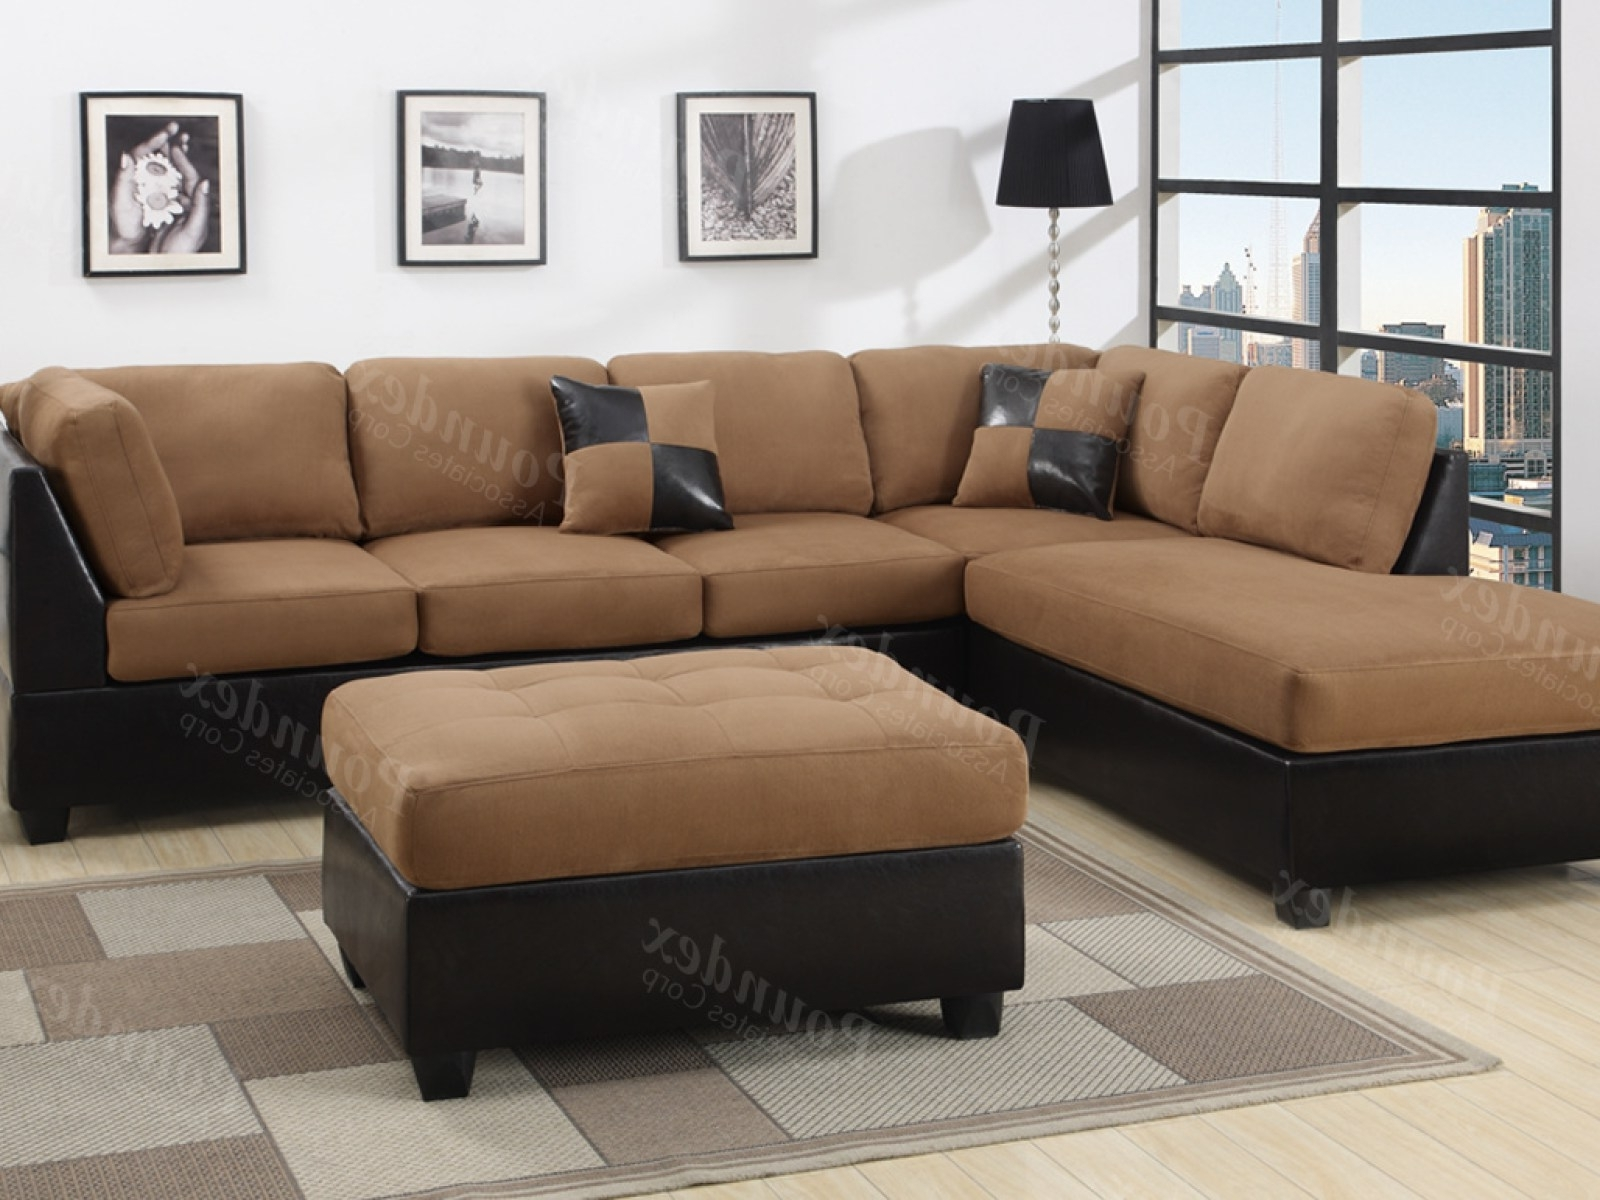 Popular Sectional Sofas That Can Be Rearranged Pertaining To ▻ Sofa : 15 3058702 Poster P 1 A Modular Sofa That Can Rearrange (View 12 of 20)